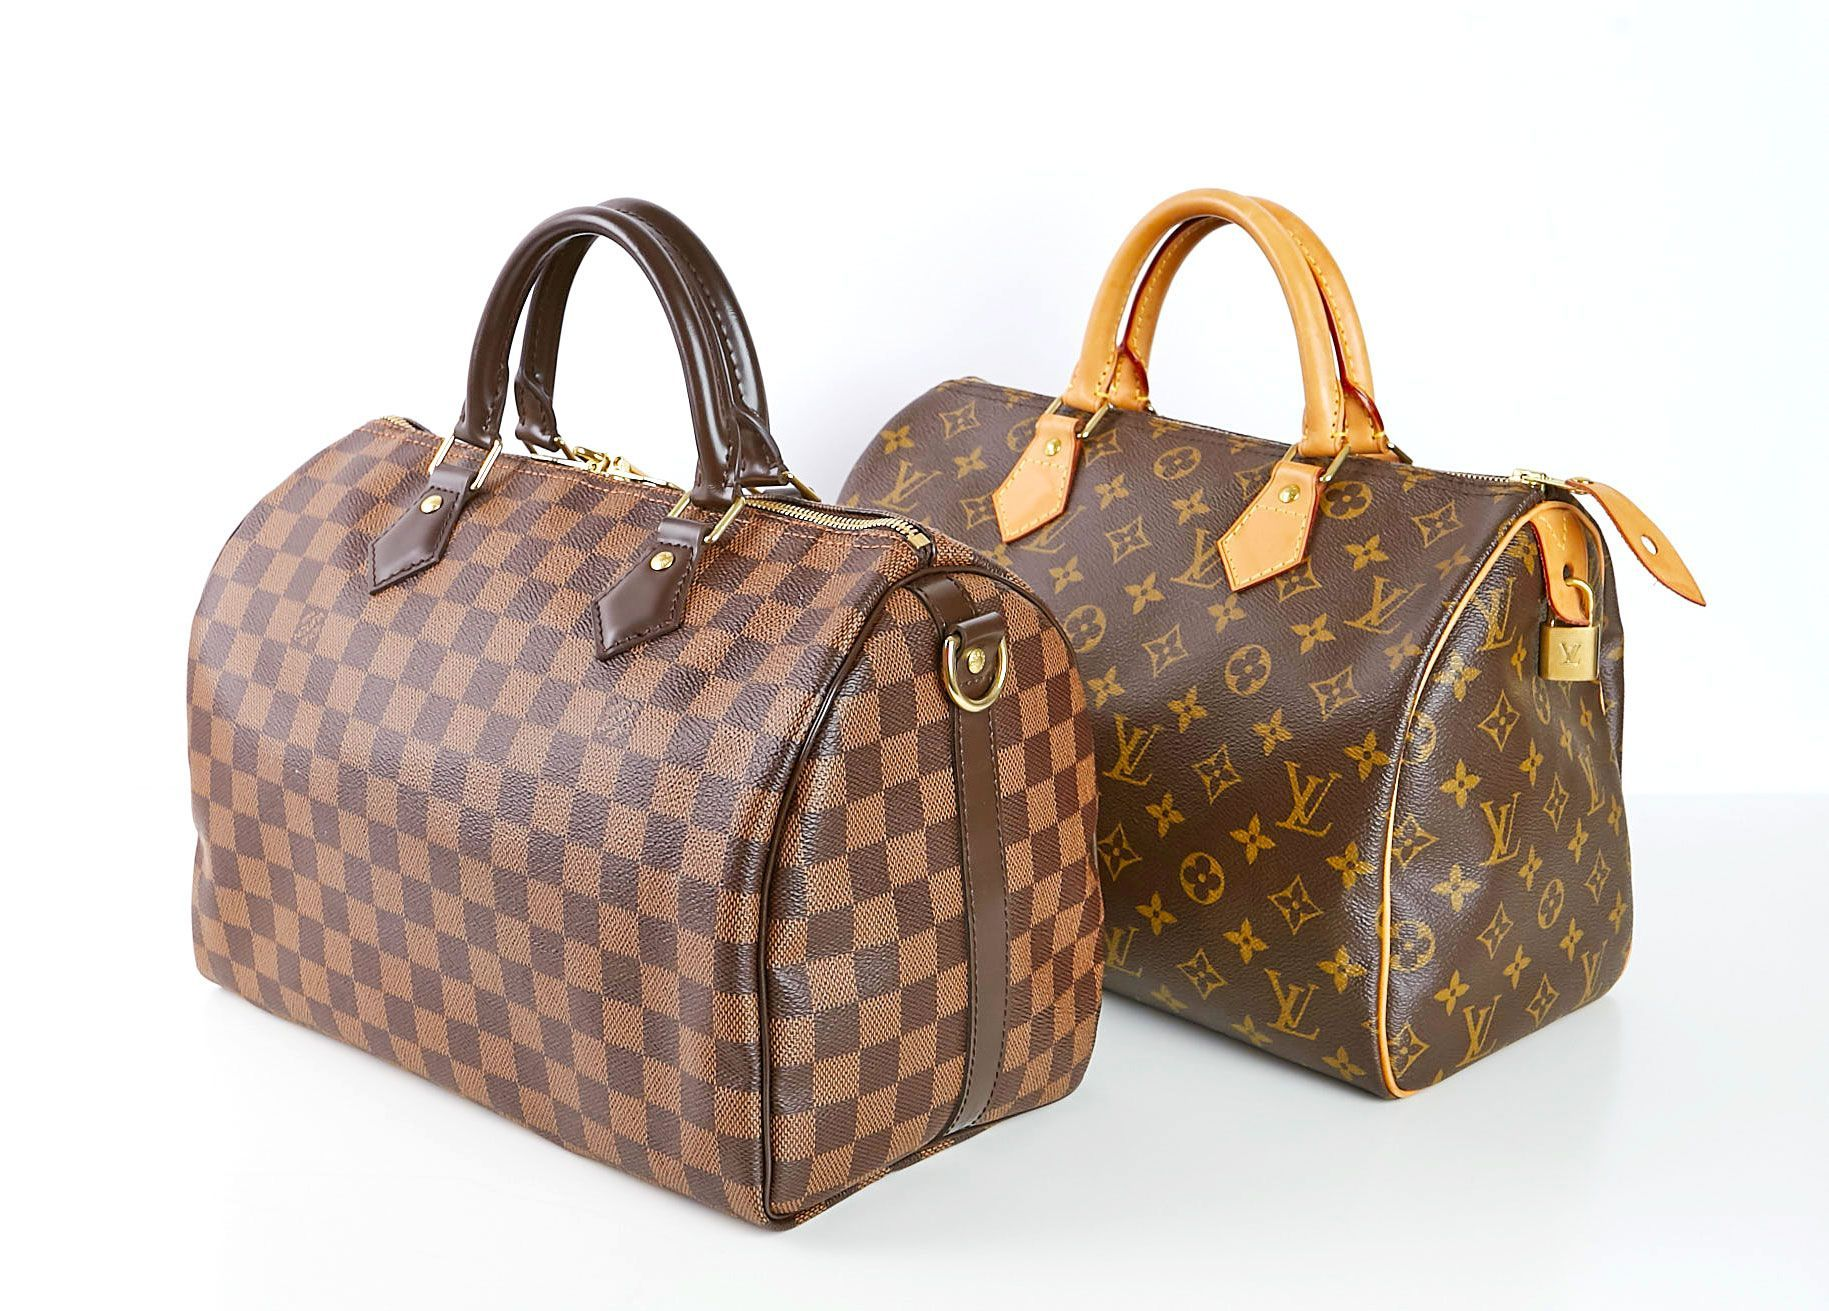 Louis Vuitton Damier Ebene Speedy Bandouliere 30 and Louis Vuitton Monogram  Canvas Speedy 30 Bag  c0d0ee50781d9